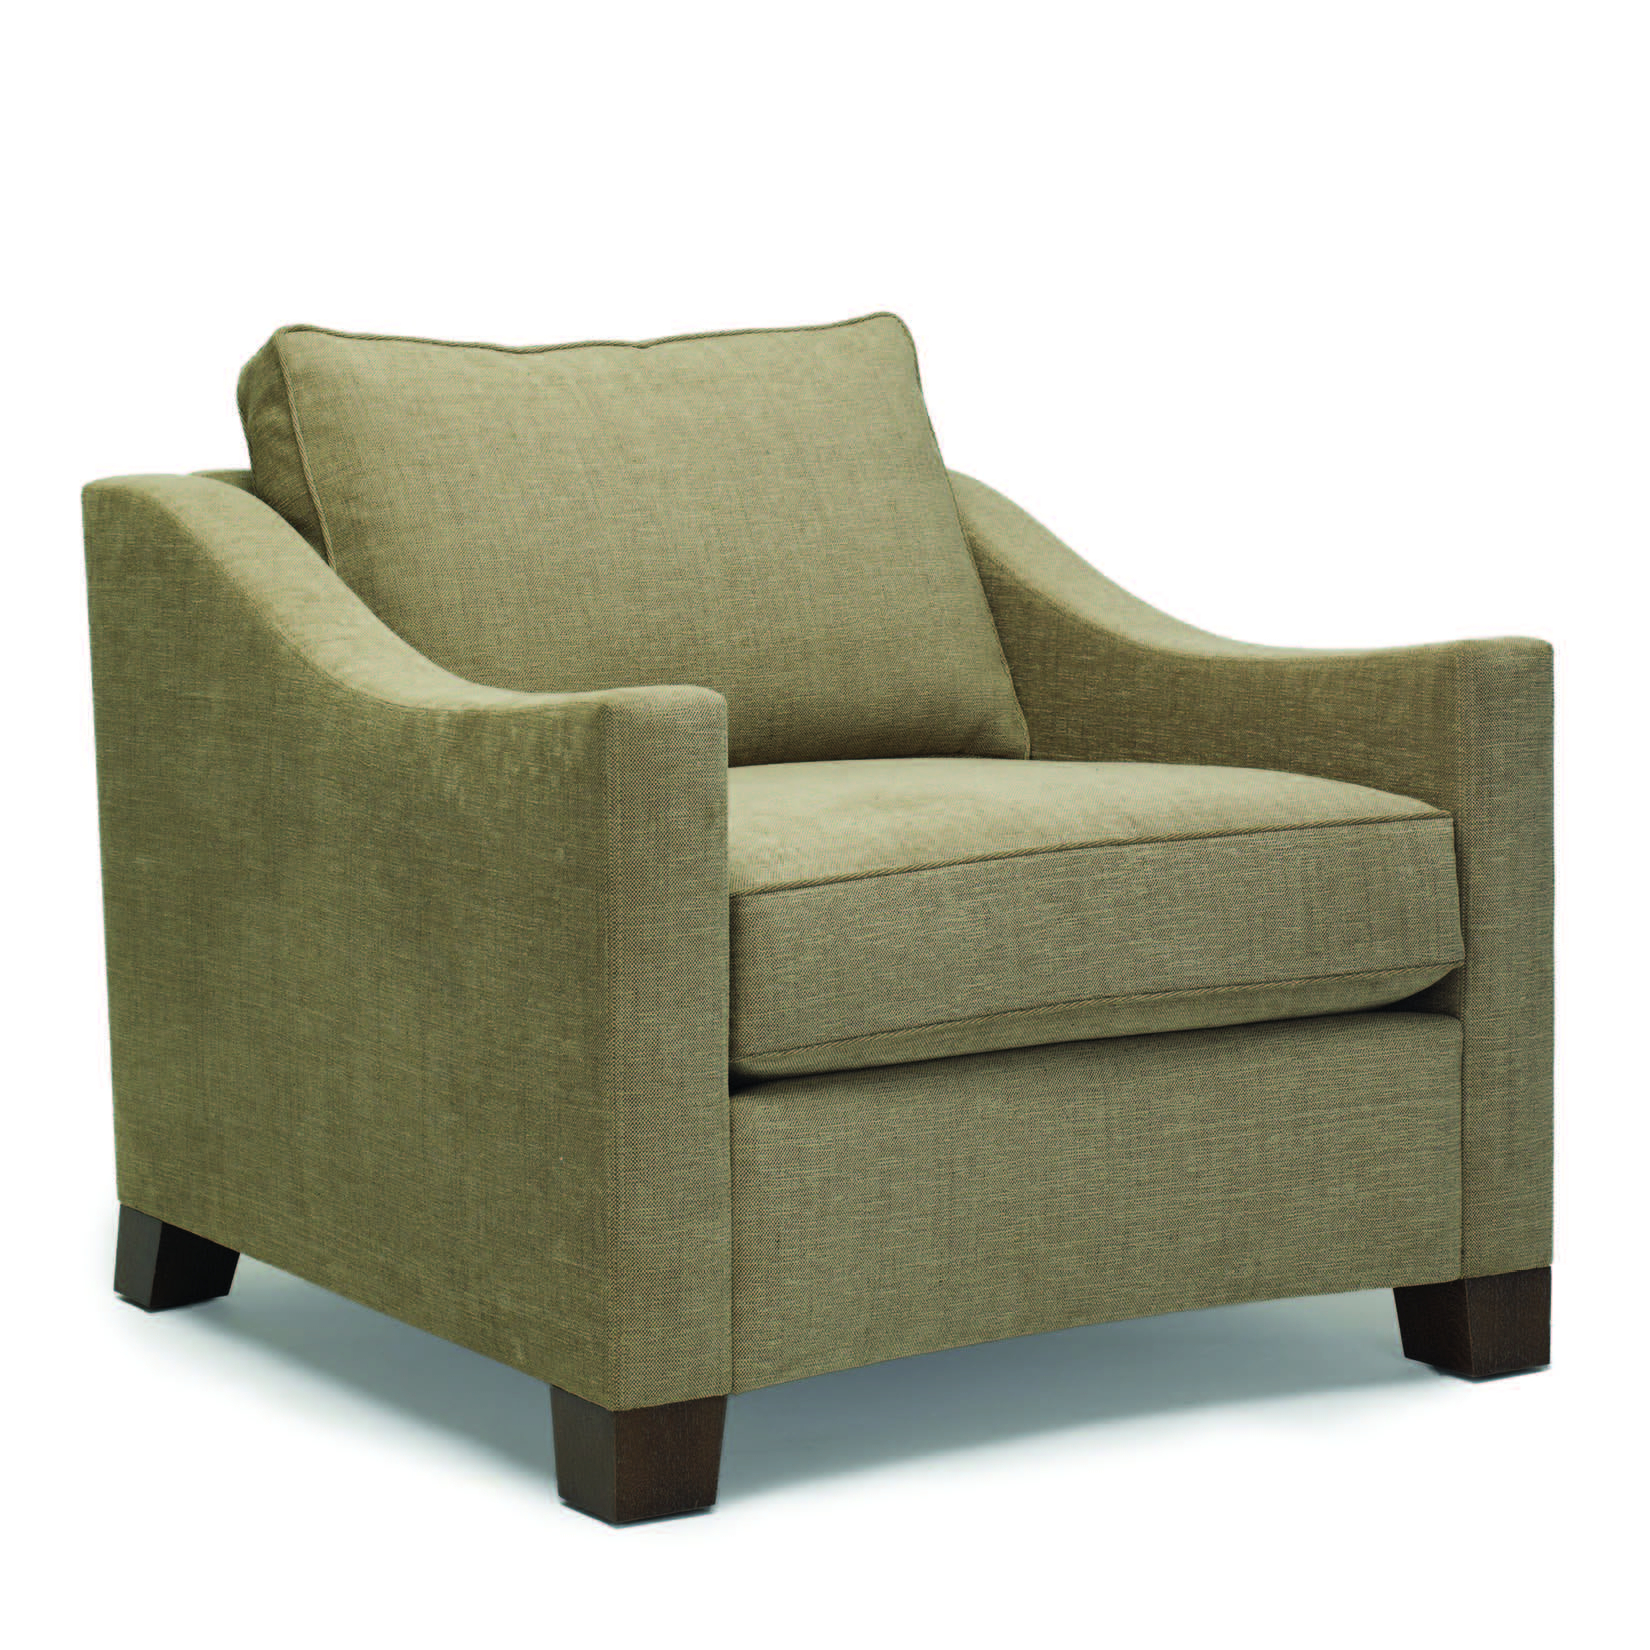 Lounge & Occasional : Dennis Miller Associates Fine Contemporary In Bailey Angled Track Arm Swivel Gliders (Image 19 of 25)